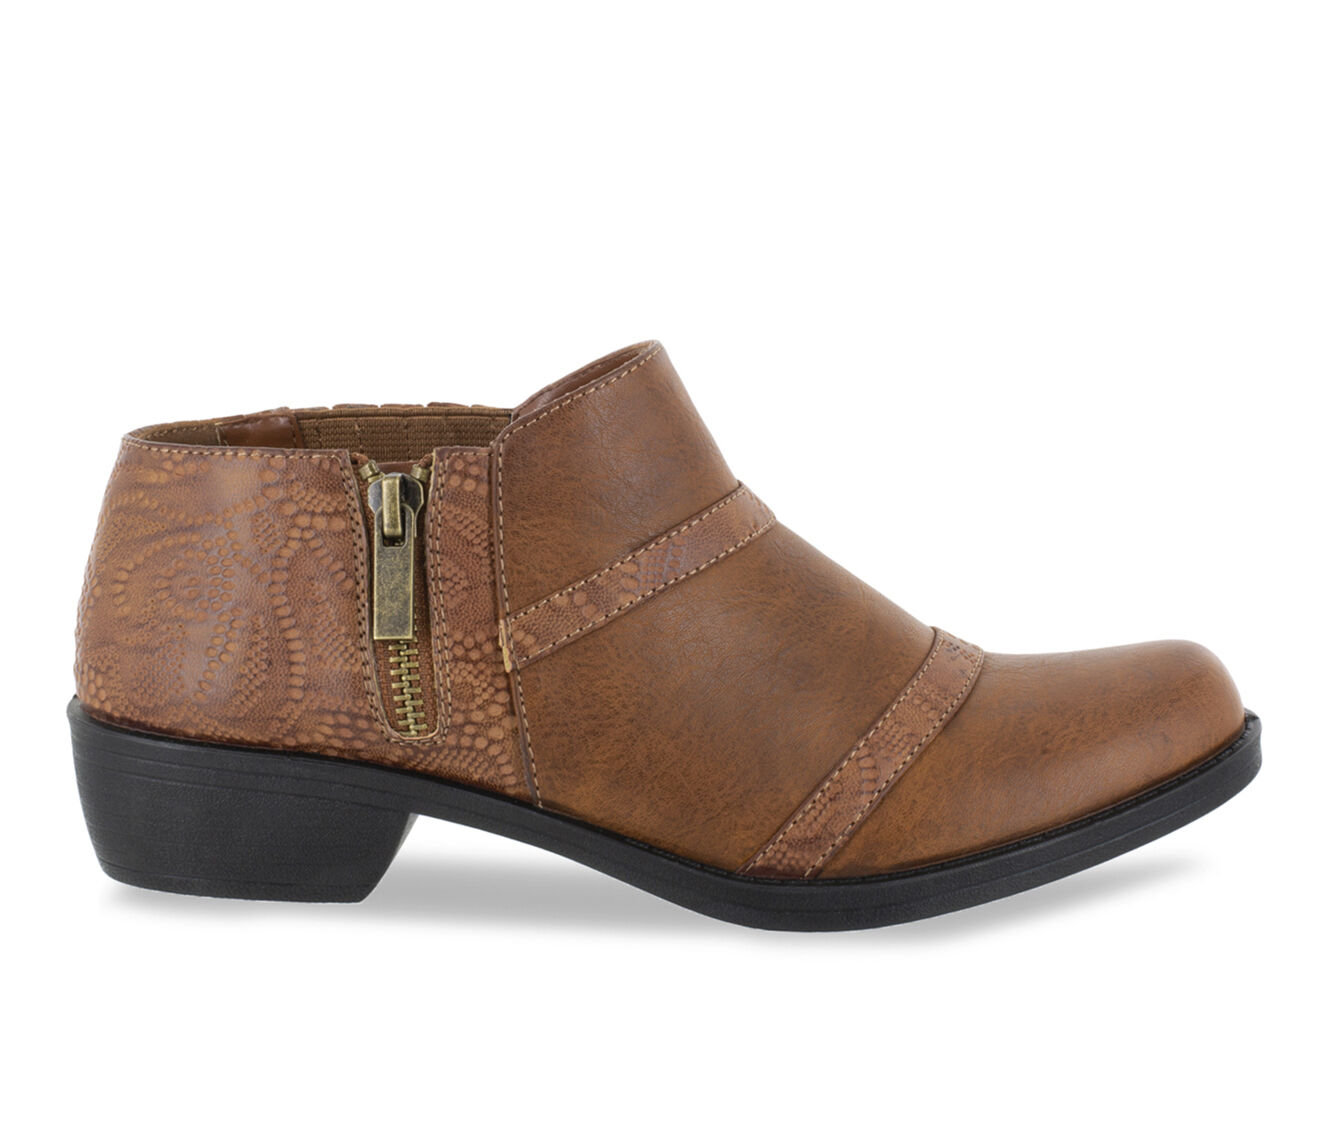 Women's Easy Street Ira Shoes Tan